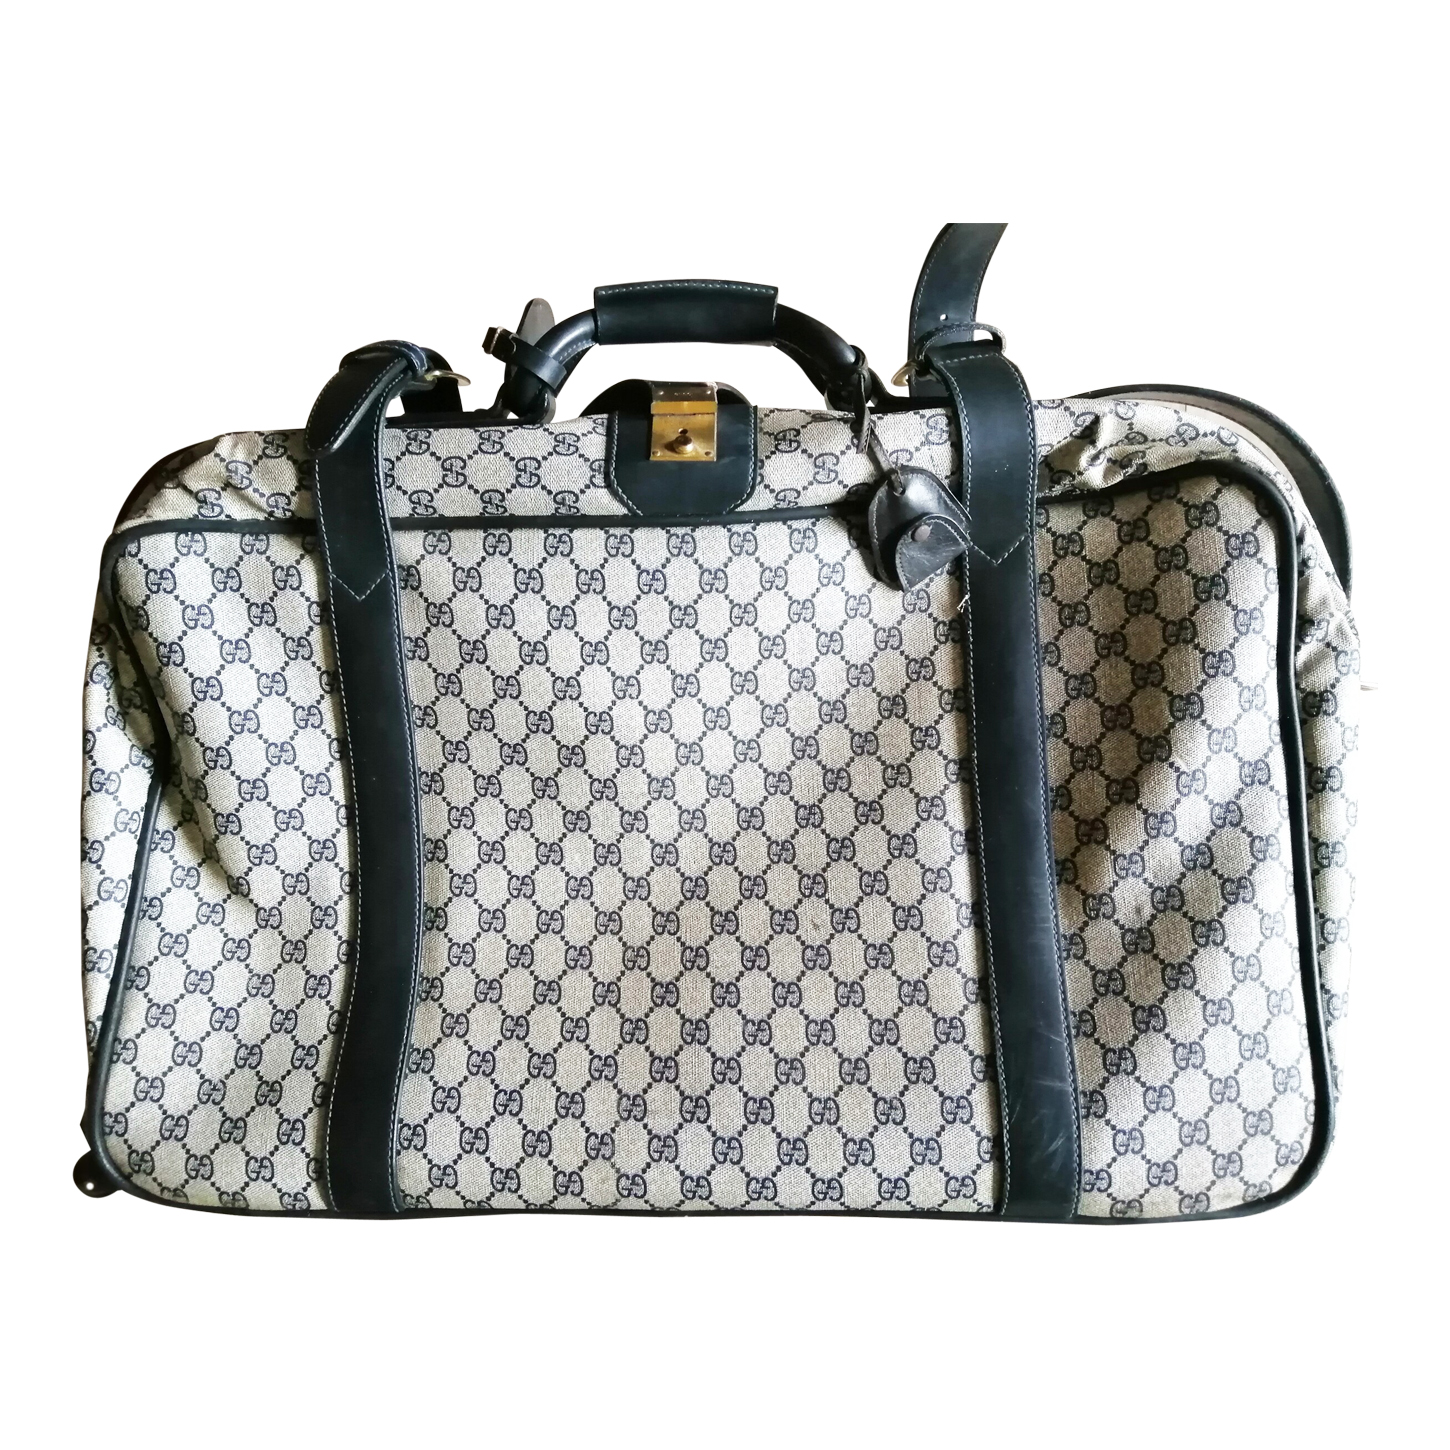 Valise Gucci 80s